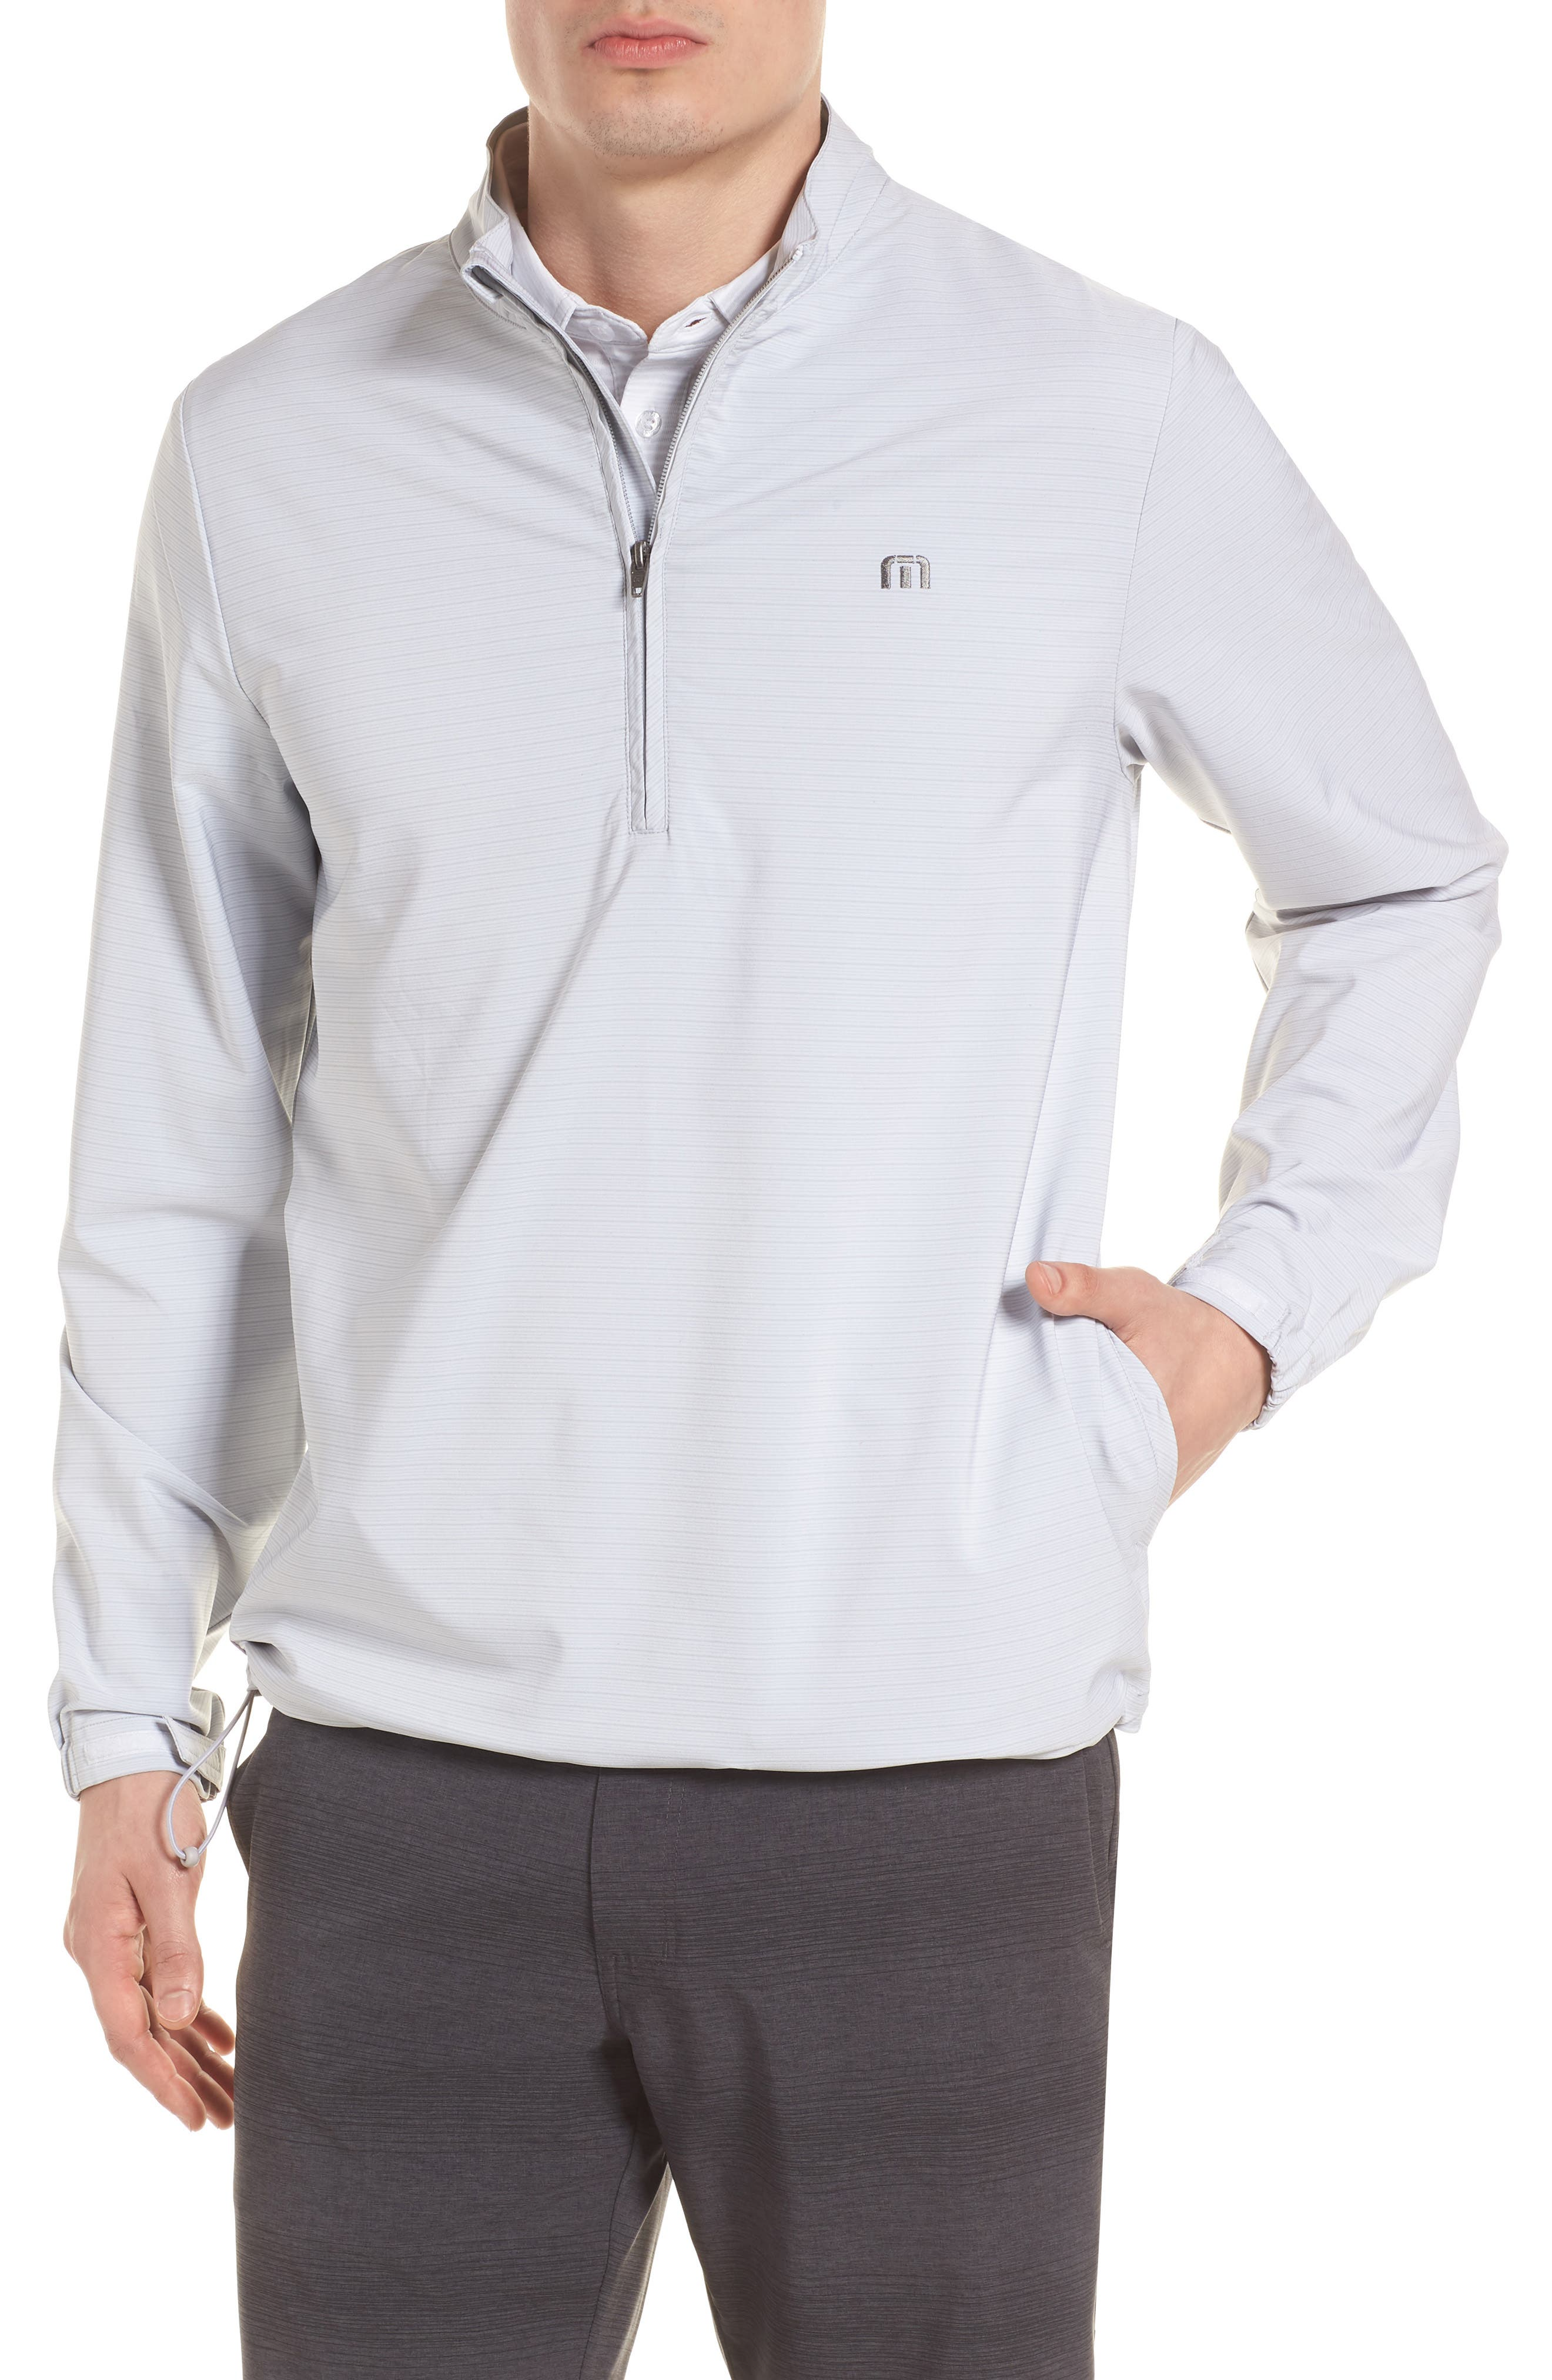 Luca Quarter Zip Pullover,                             Main thumbnail 1, color,                             Micro Chip/ White